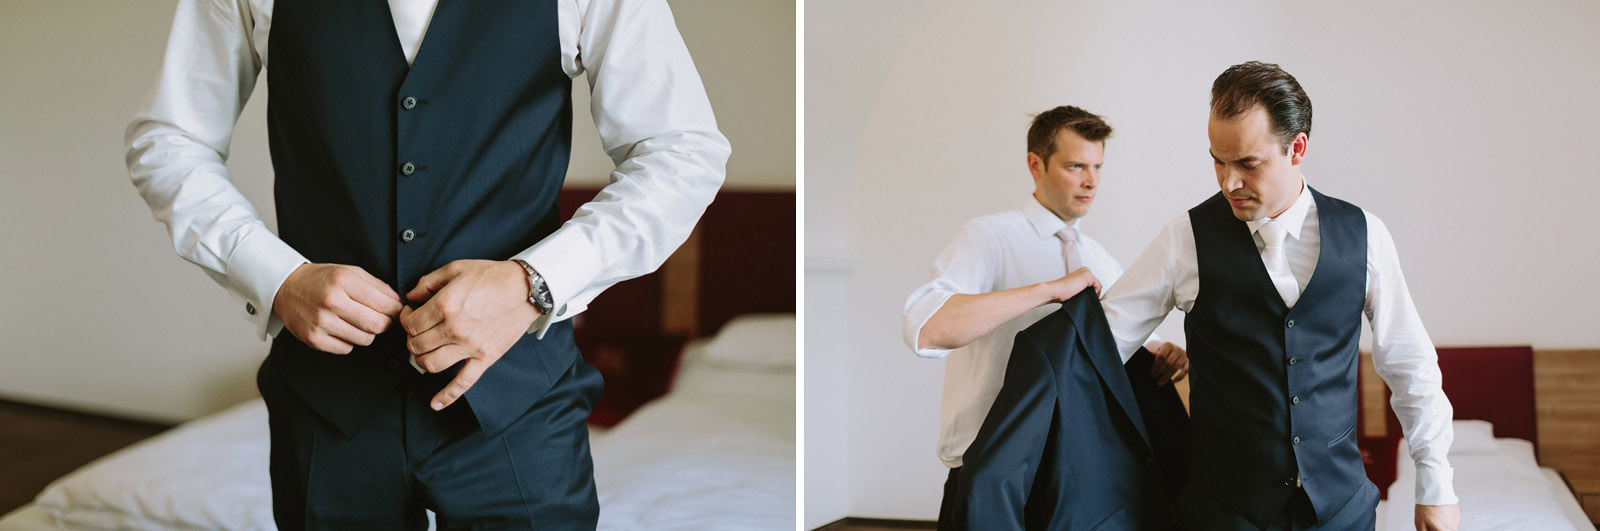 wedding suit groom wedding hainburg